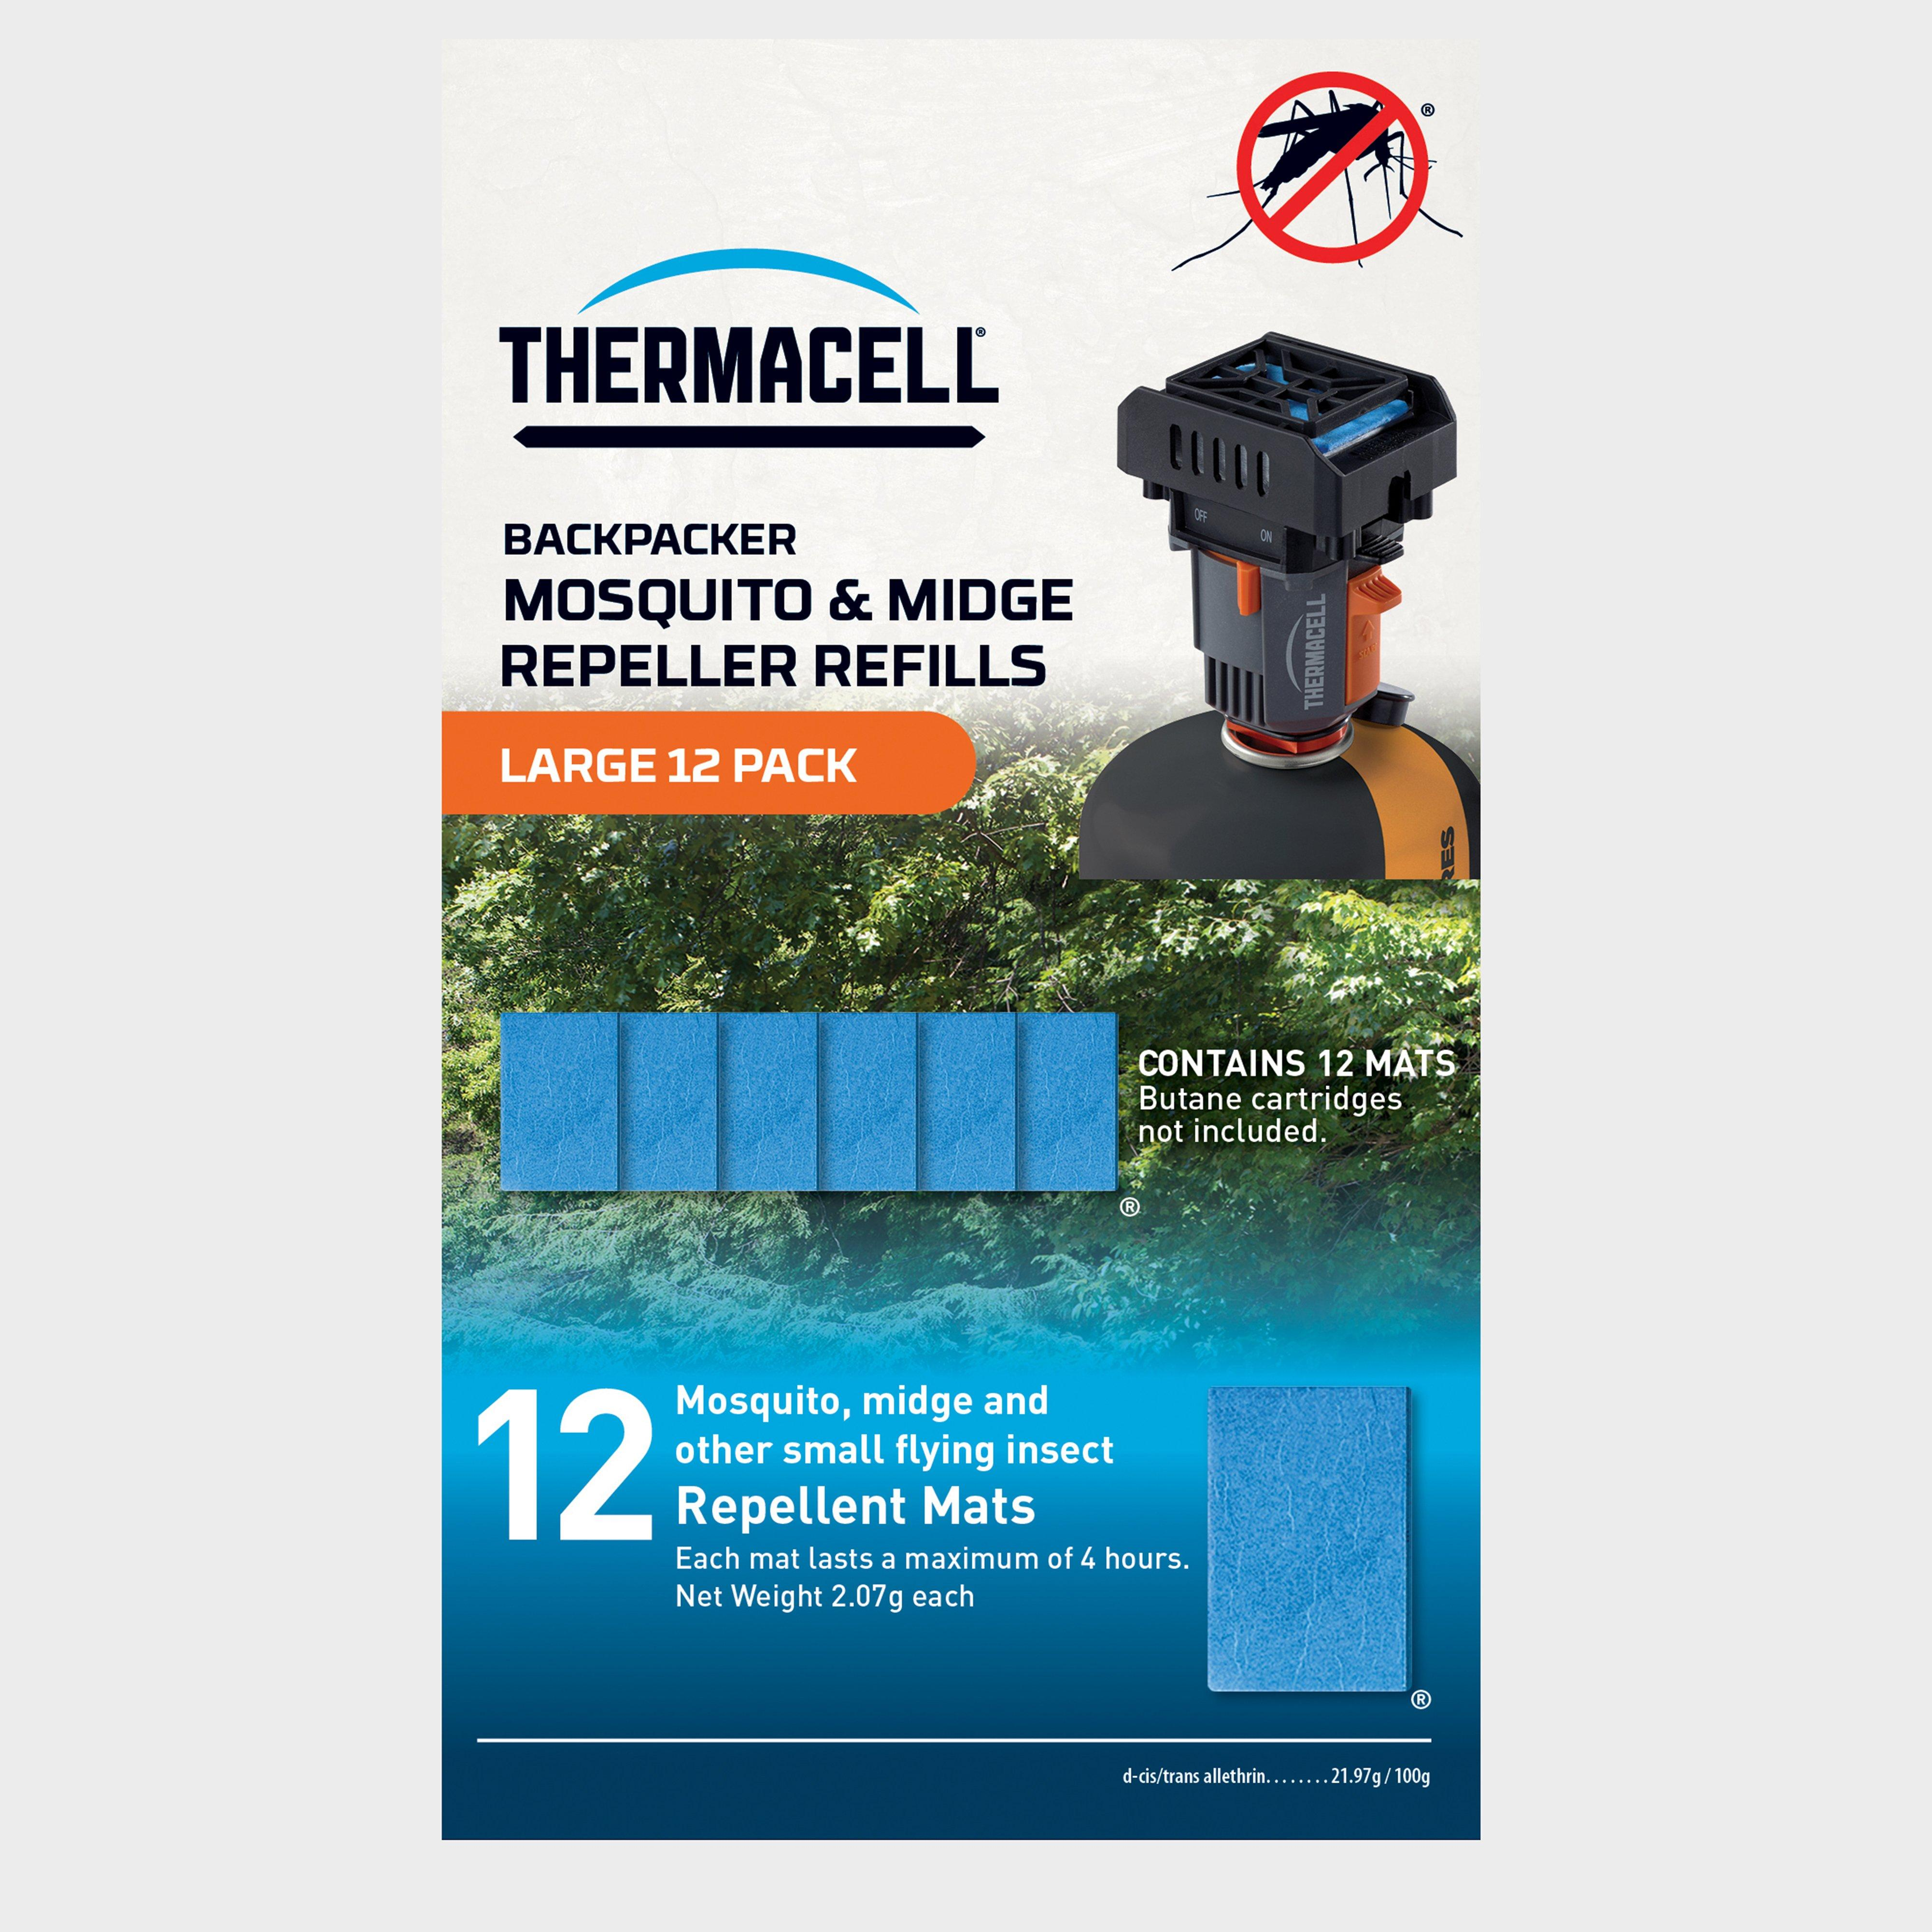 Thermacell Large Backpacker MosquitoandMidge Repeller Refills (12 Pack) - Multi/mats  Multi/mats